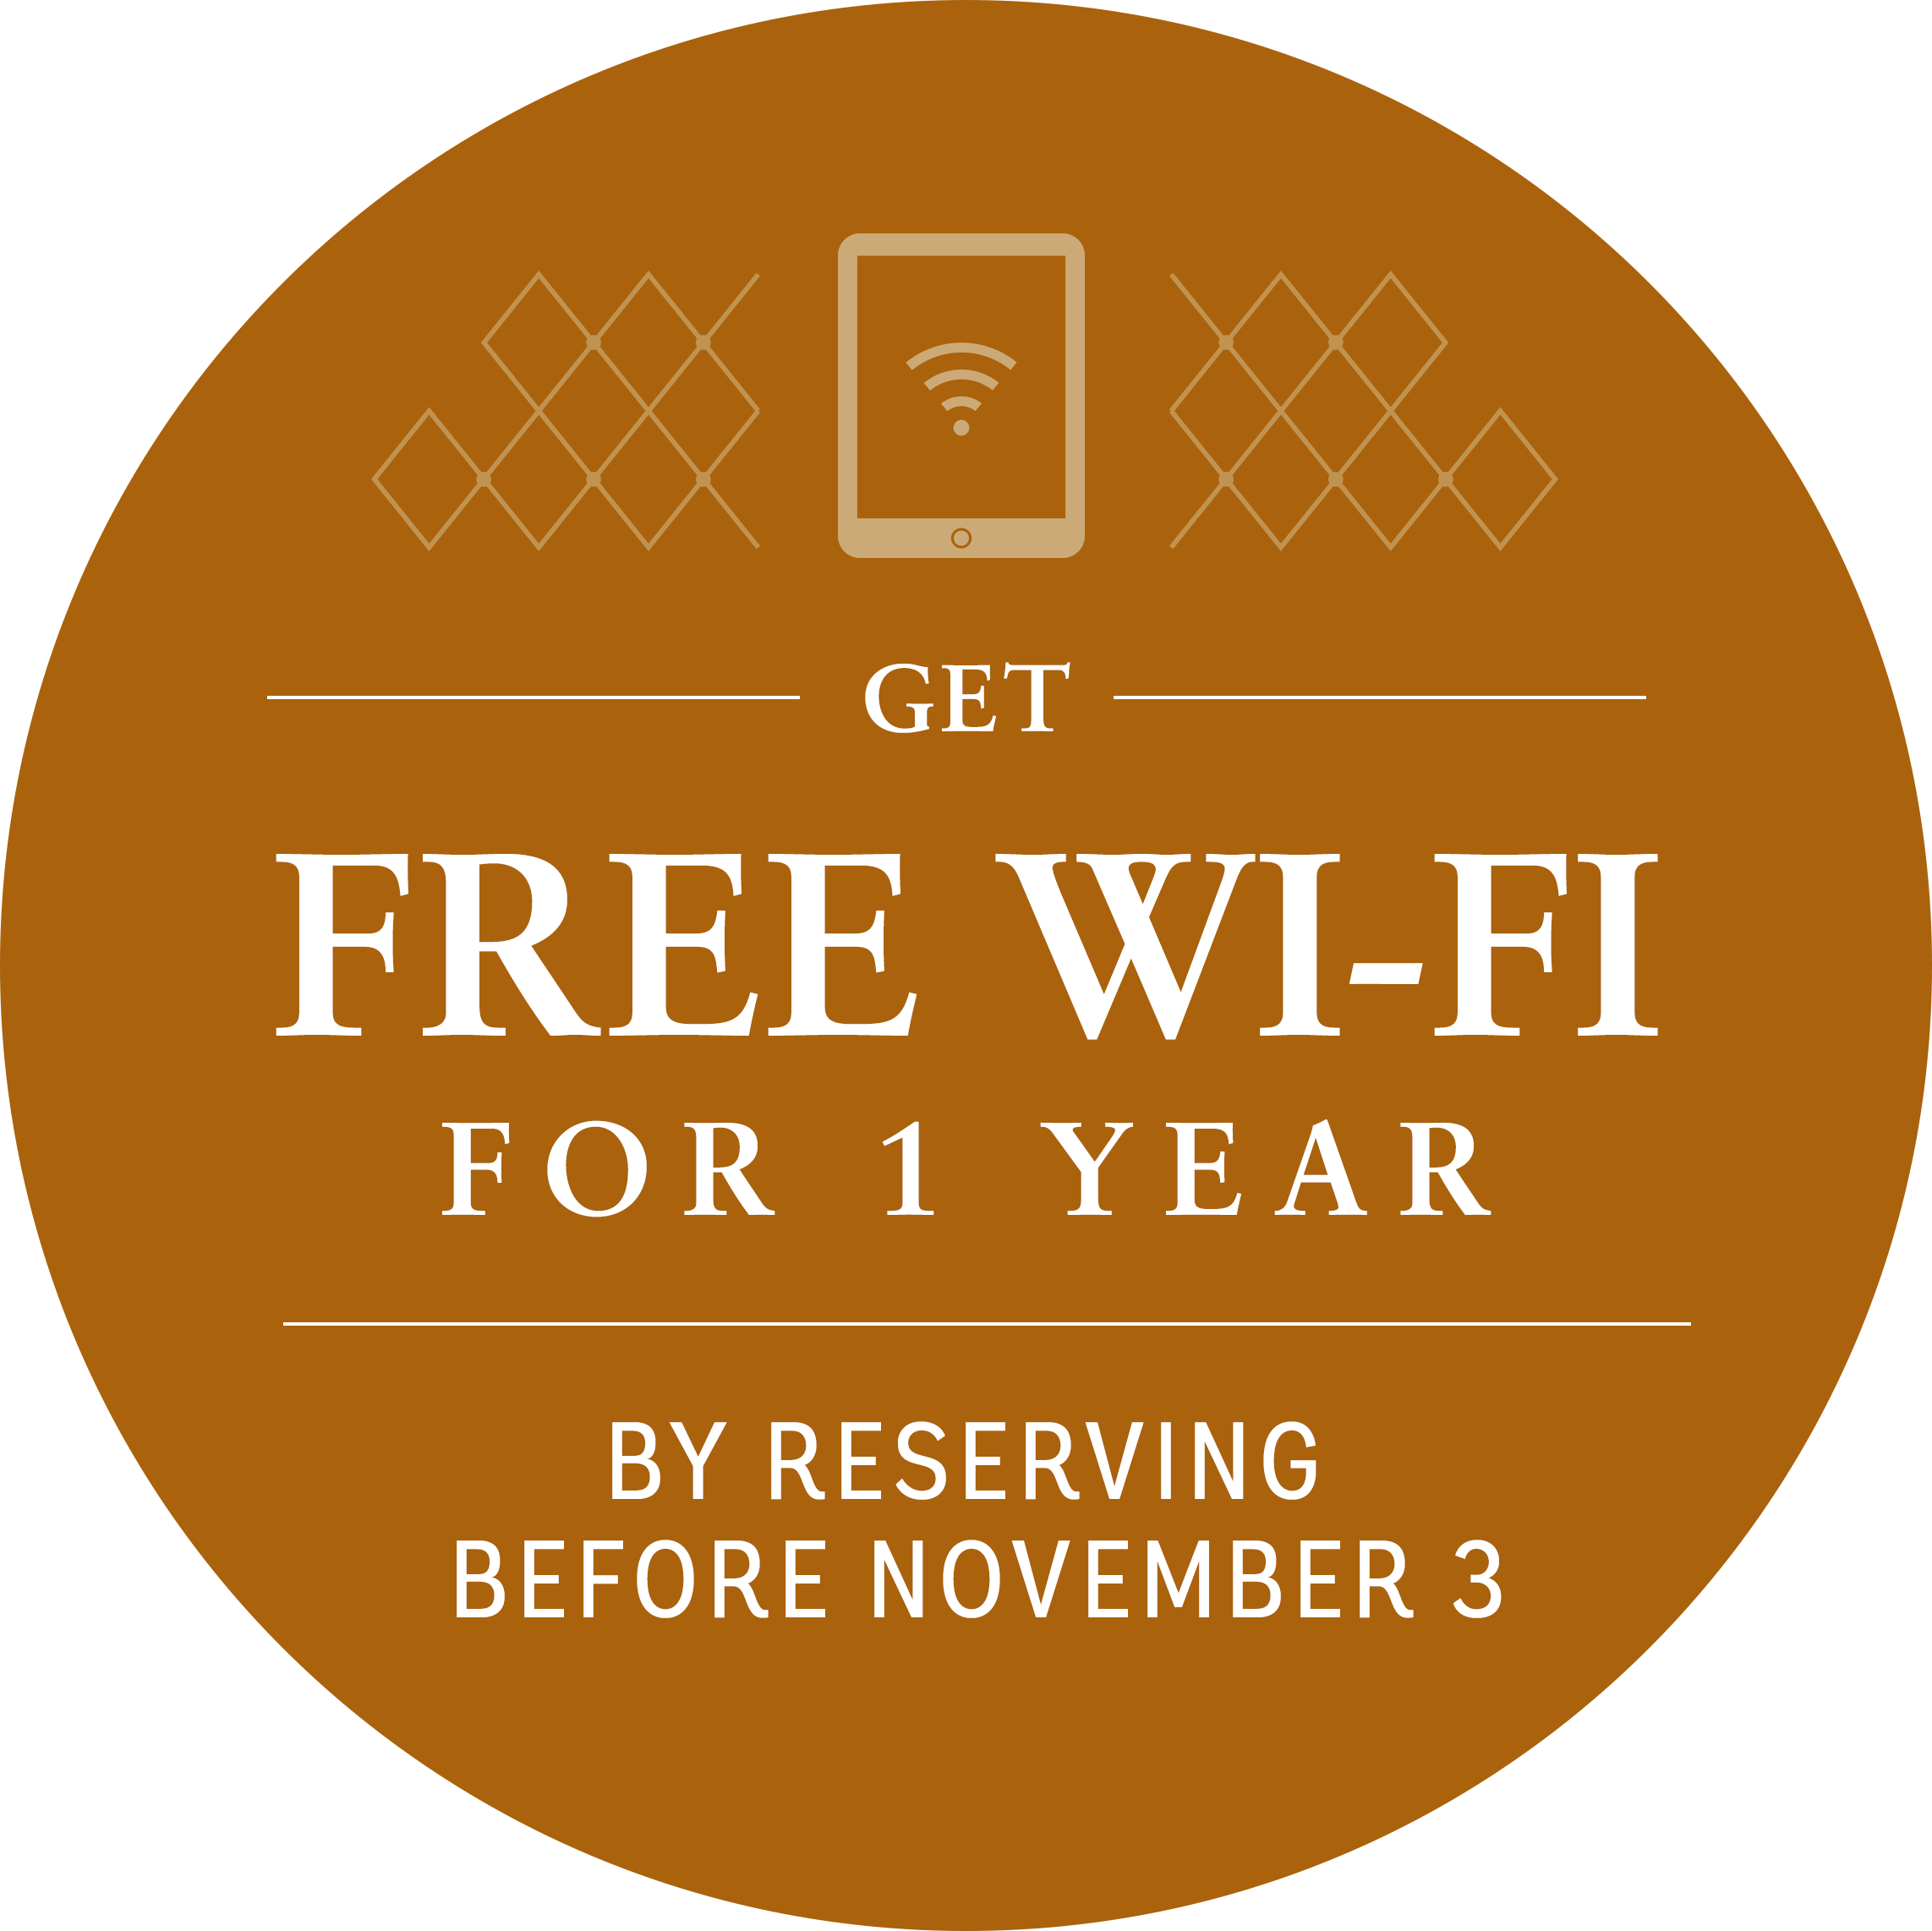 Get free wifi for 1 year by reserving before november 3